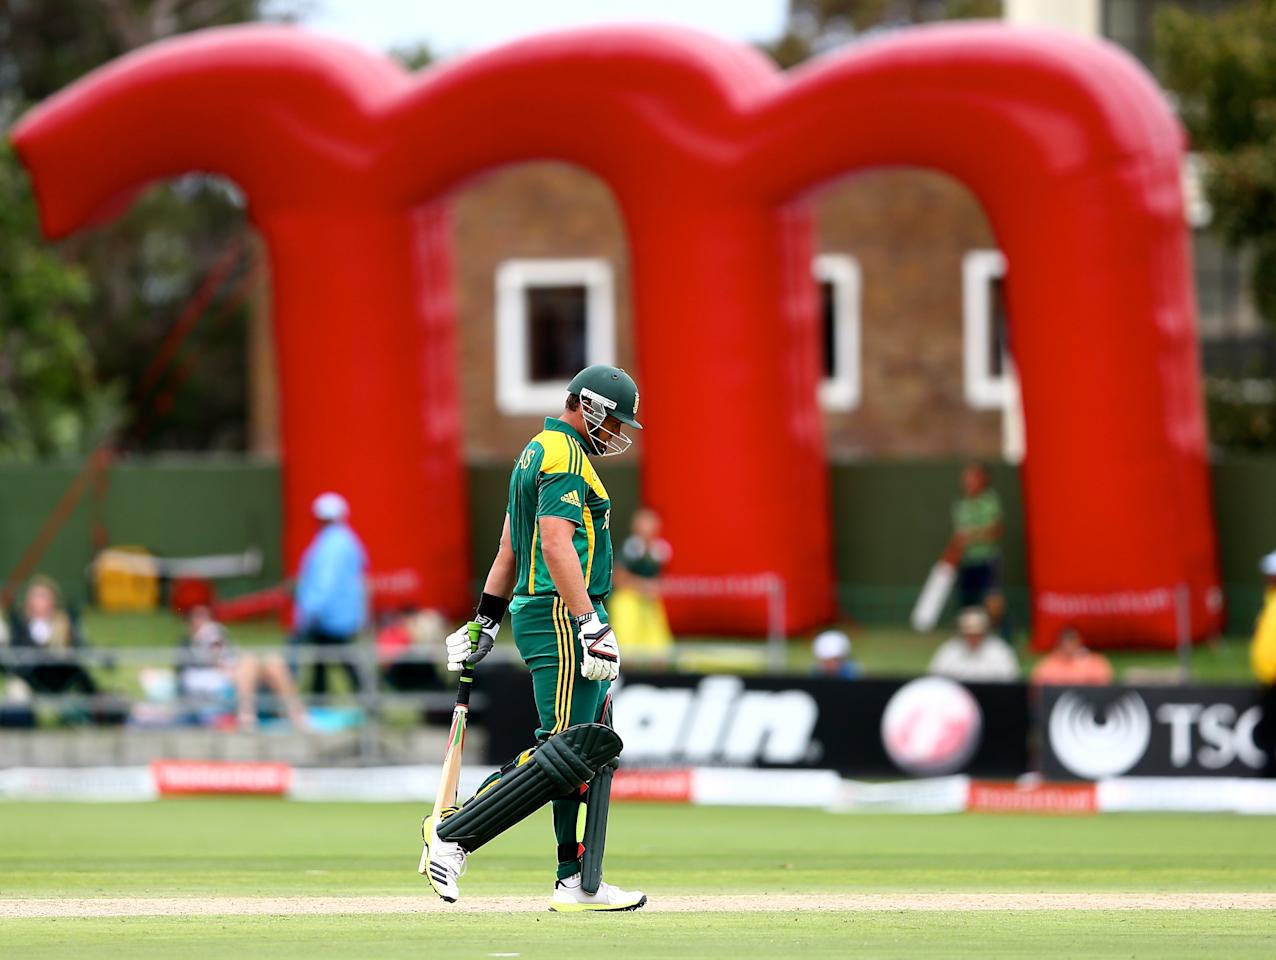 PORT ELIZABETH, SOUTH AFRICA - NOVEMBER 27: Jacques Kallis of South Africa leaves the pitch after being caught out by Saeed Ajmal of Pakistan during the 2nd One Day International match between South Africa and Pakistan at AXXESS St Georges on November 27, 2013 in Port Elizabeth, South Africa. (Photo by Richard Huggard/Gallo Images)